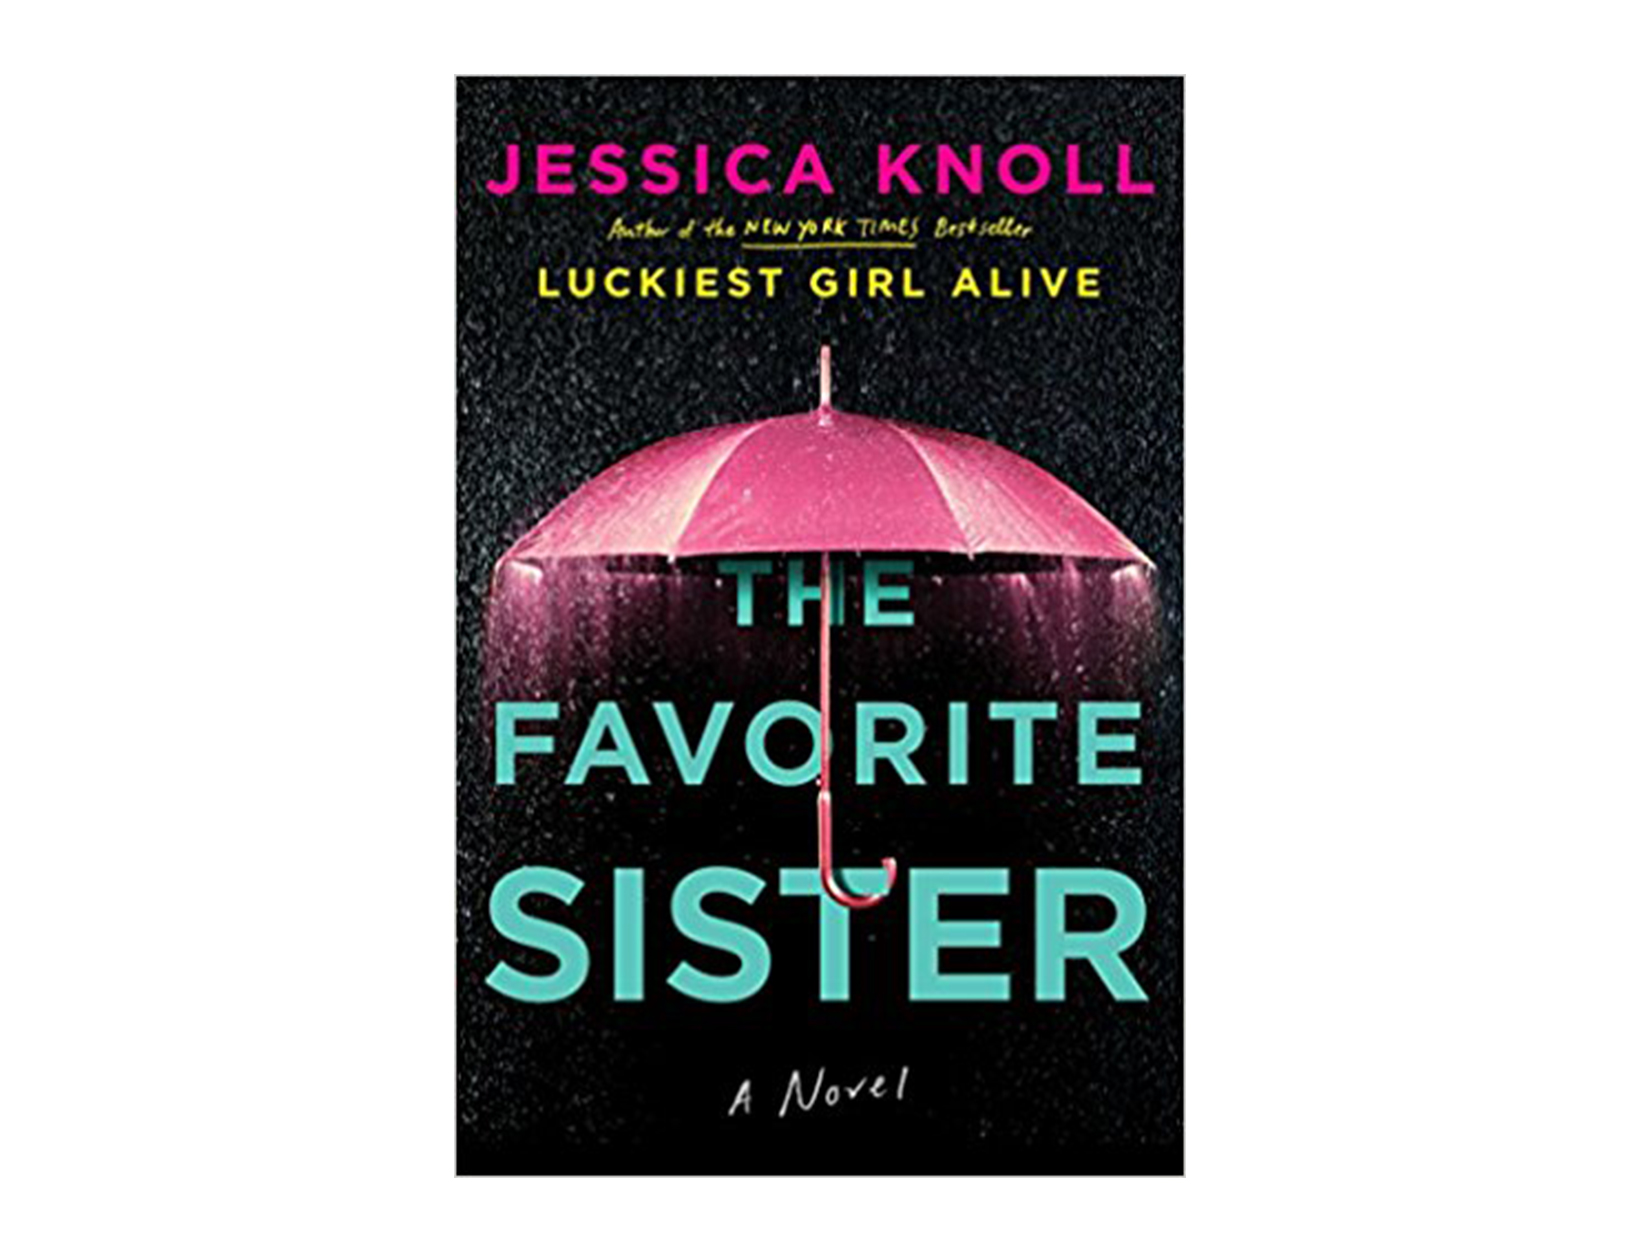 <em>The Favorite Sister</em> by Jessica Knoll